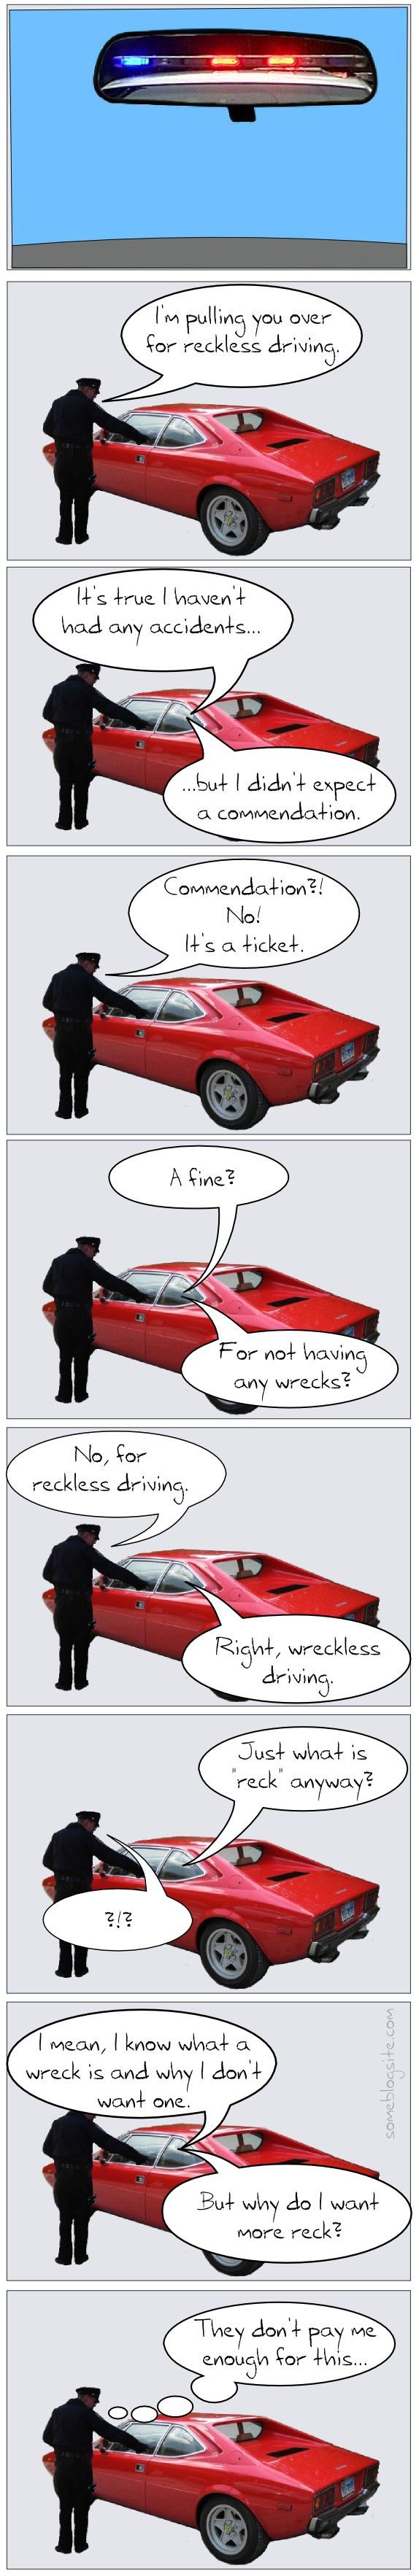 comic of a person being pulled over by the police for reckless driving but they confuse it with wreckless driving; hilarity ensues.